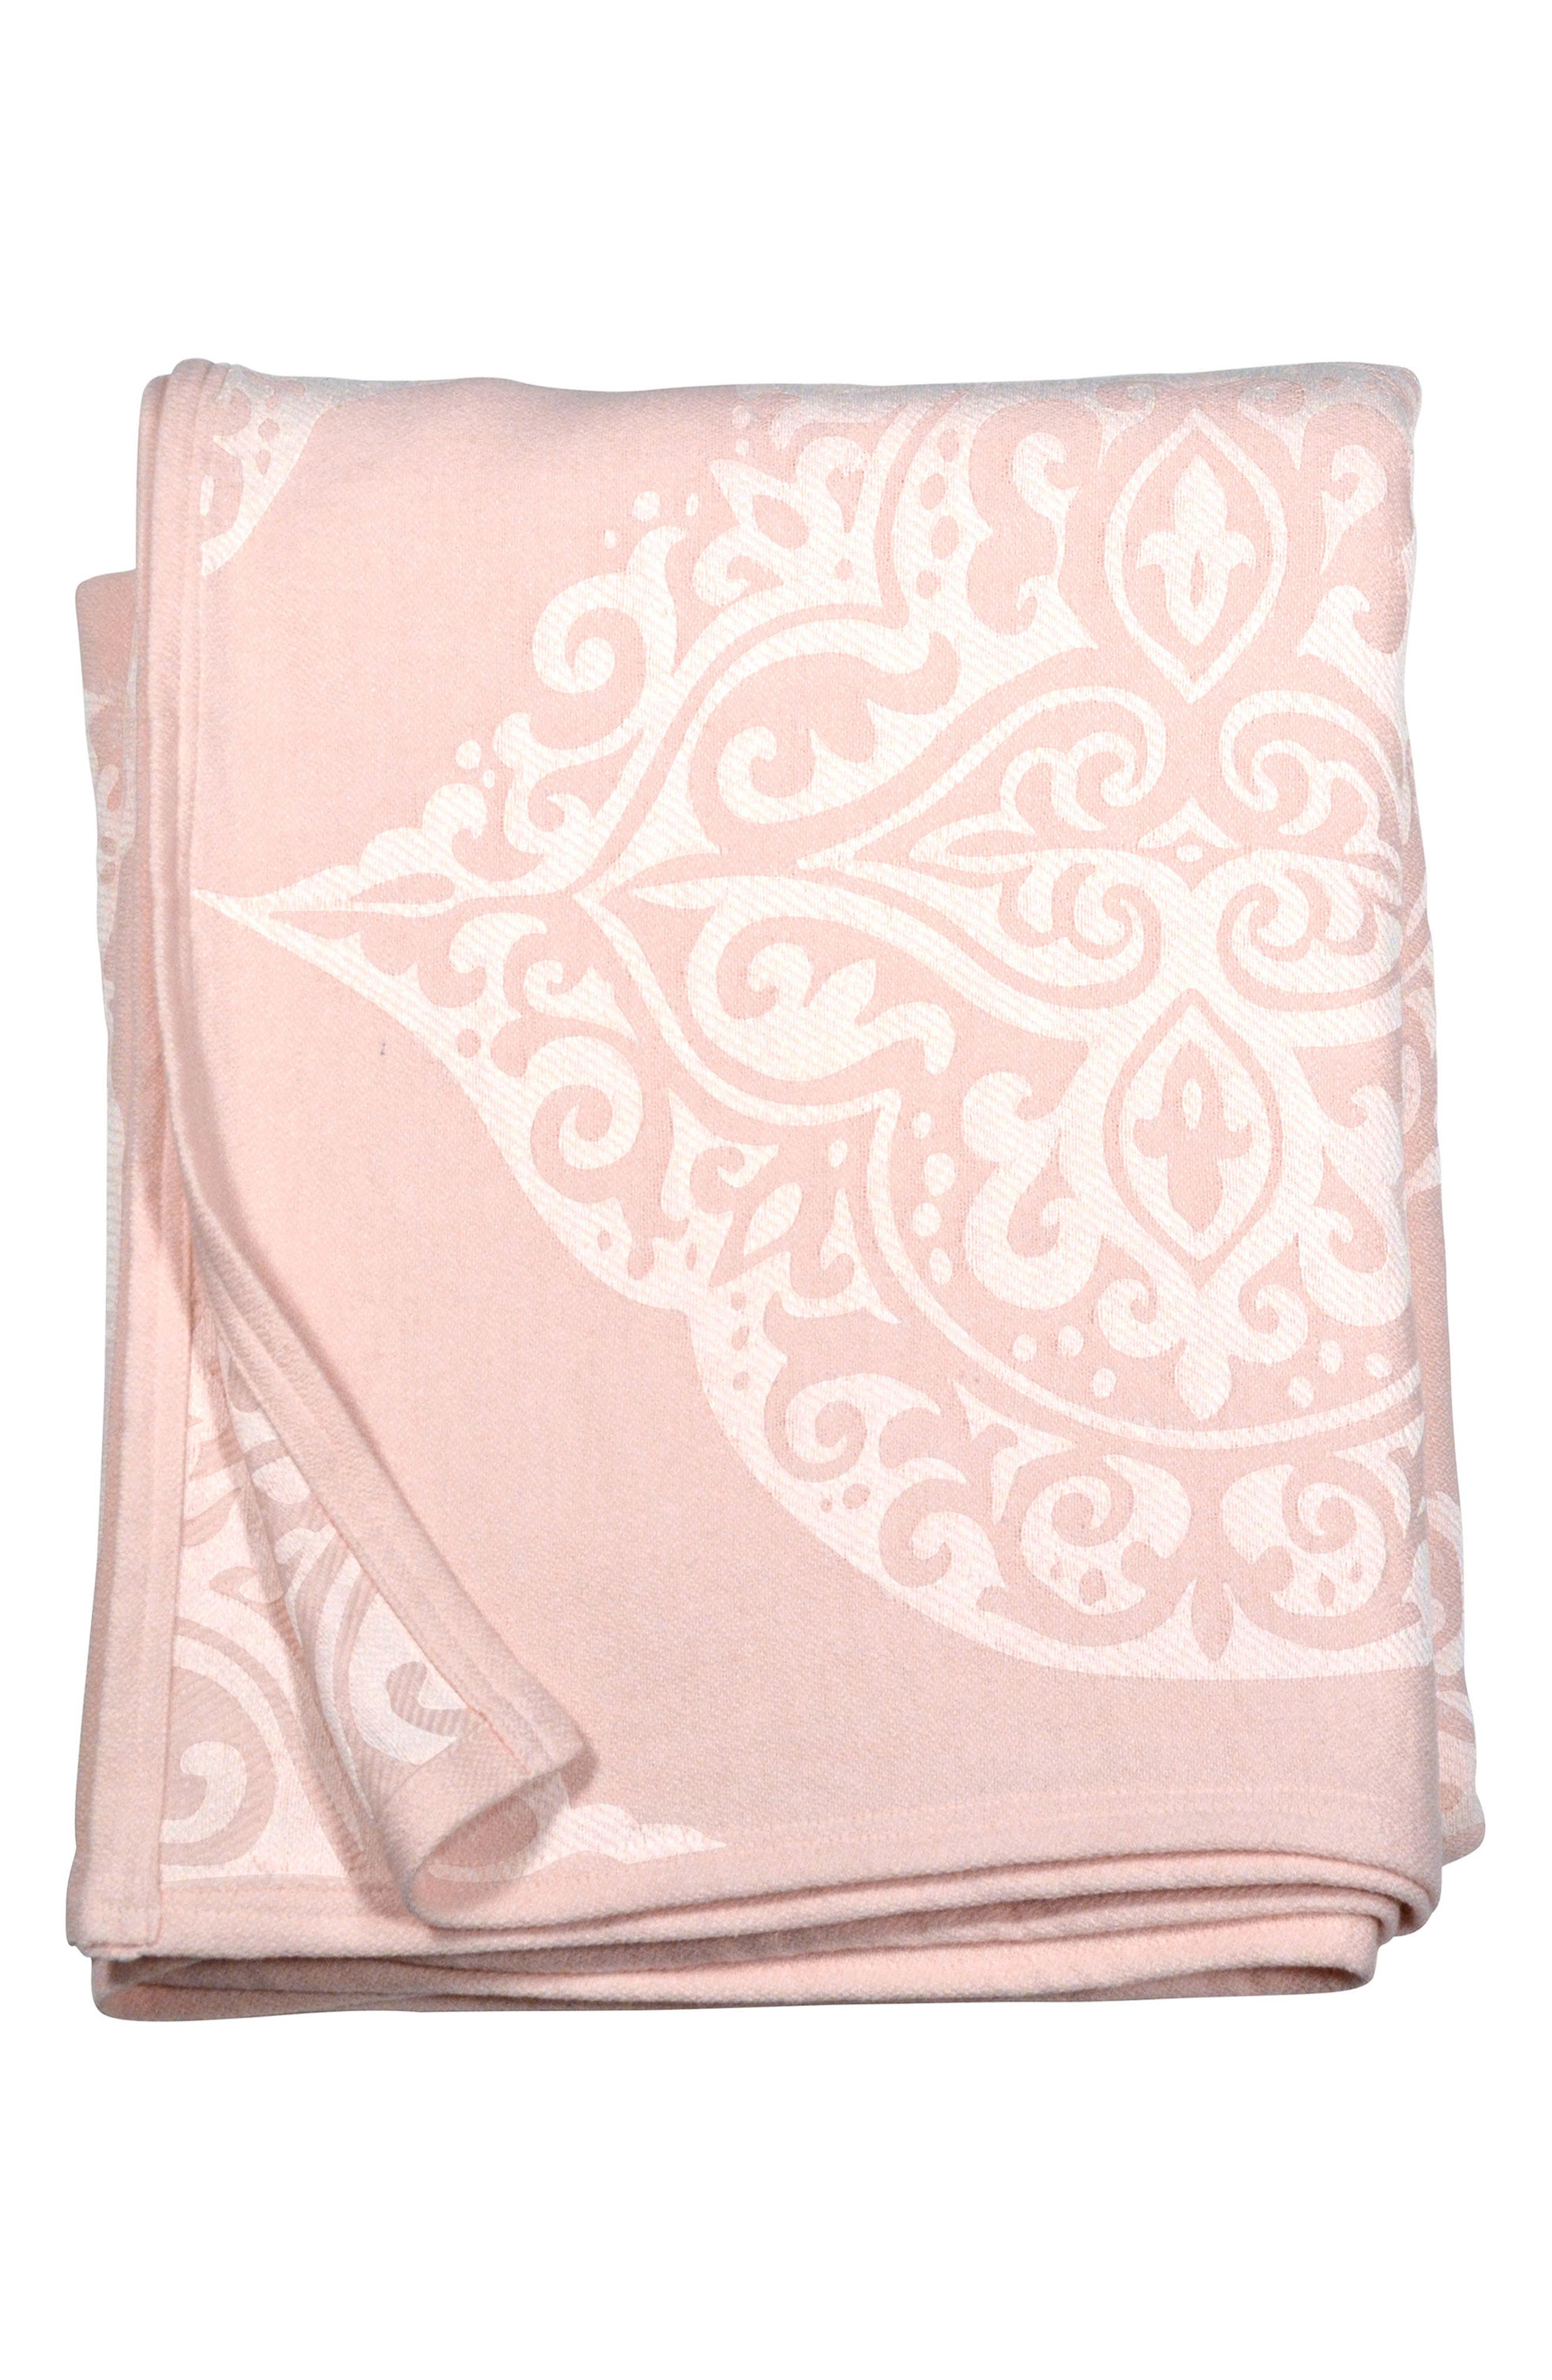 Damask Blanket,                             Main thumbnail 1, color,                             Blush